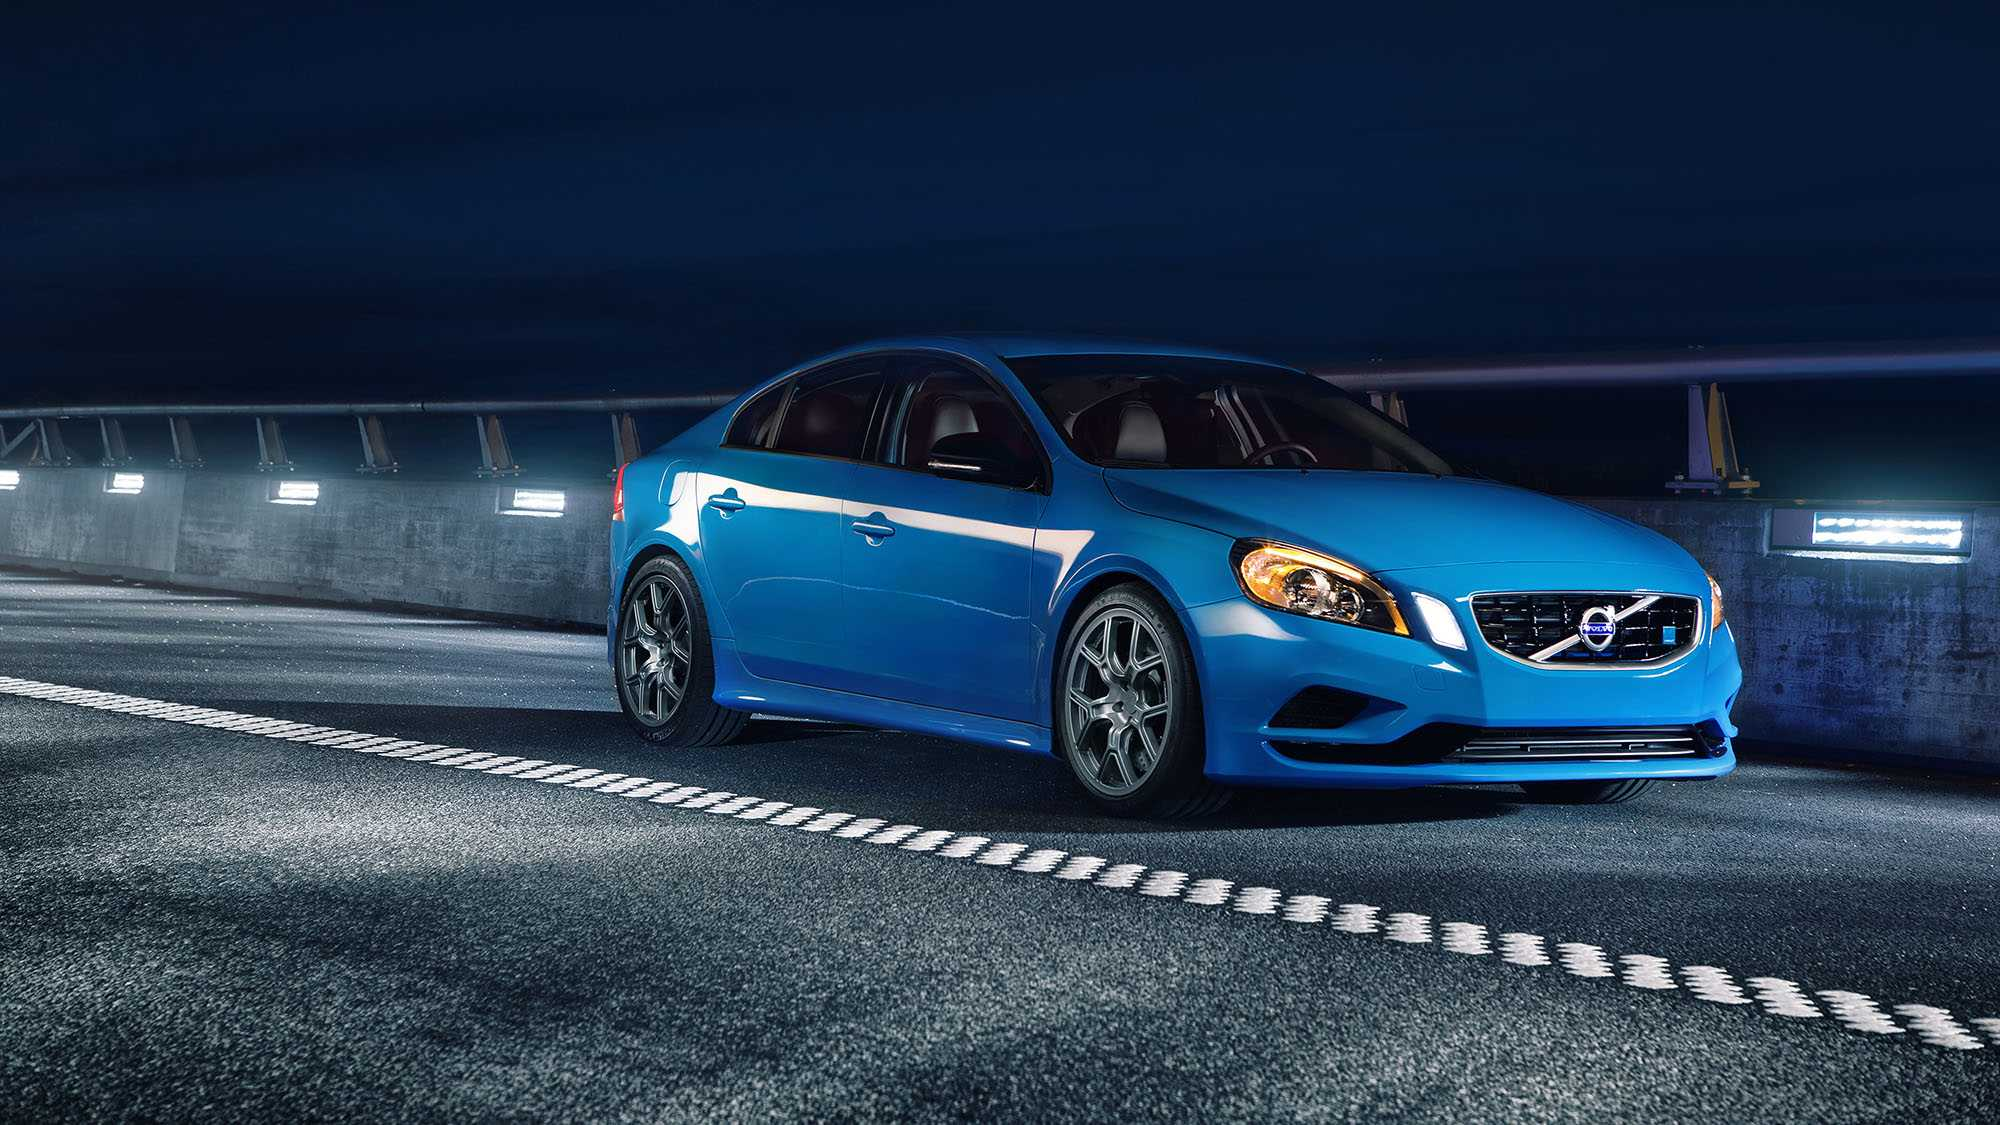 Volvo S60 Polestar is as Good as the BMW M3, an Underrated Performer